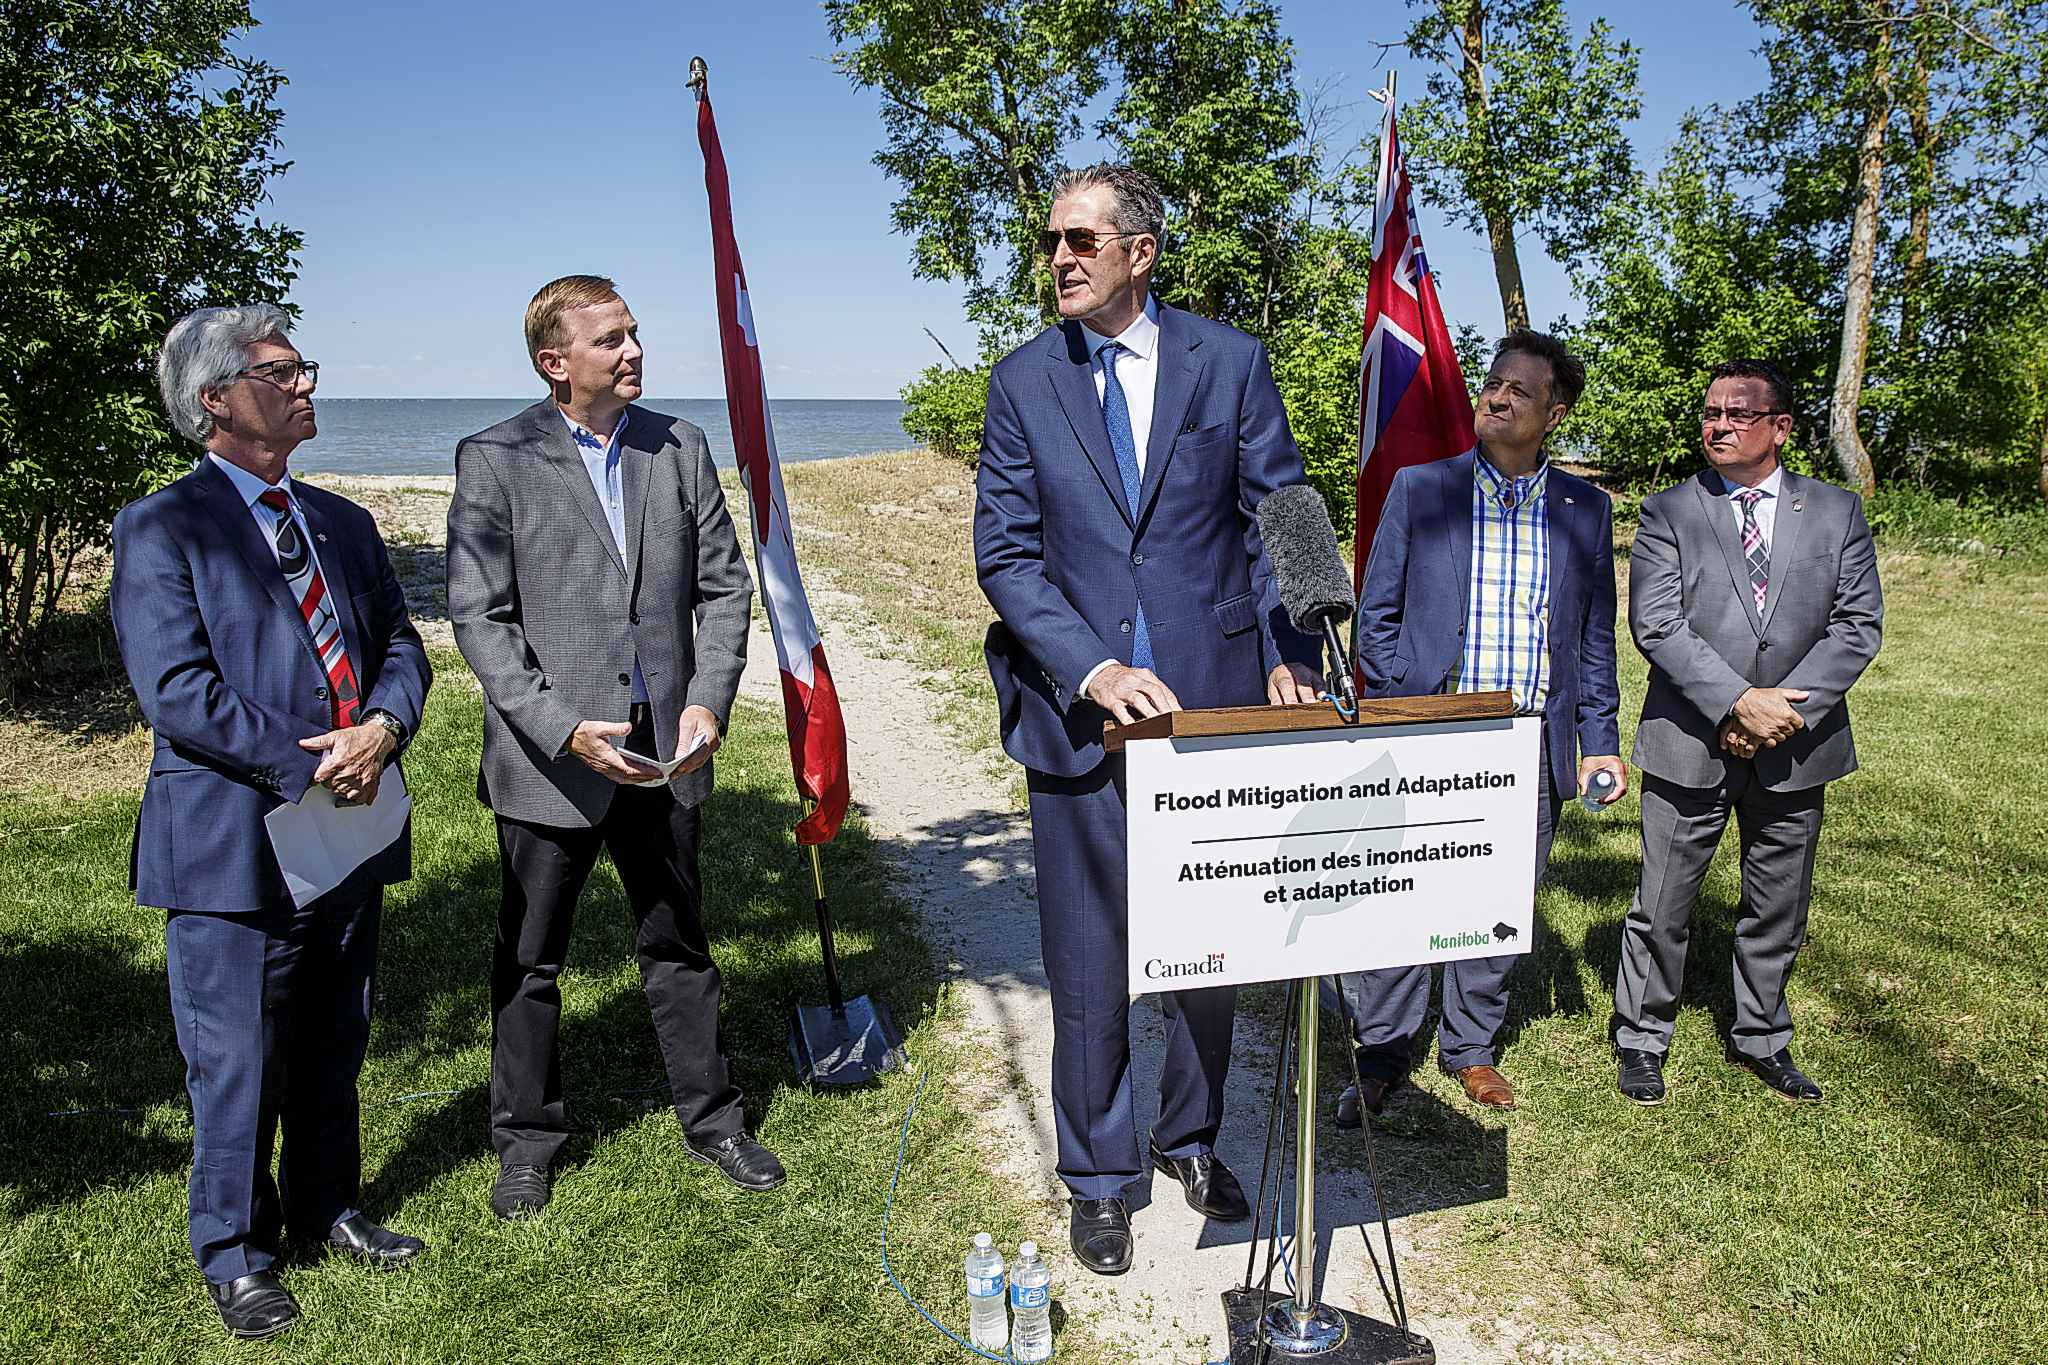 Premier Brian Pallister and Jim Carr, Federal Minister of Natural Resources Canada, announced a $540 million infrastructure project for flood management of the Lake Manitoba and Lake St. Martin outlet channels at an event at Parc Gros Arbre, off Allard Road close to St. Laurent.